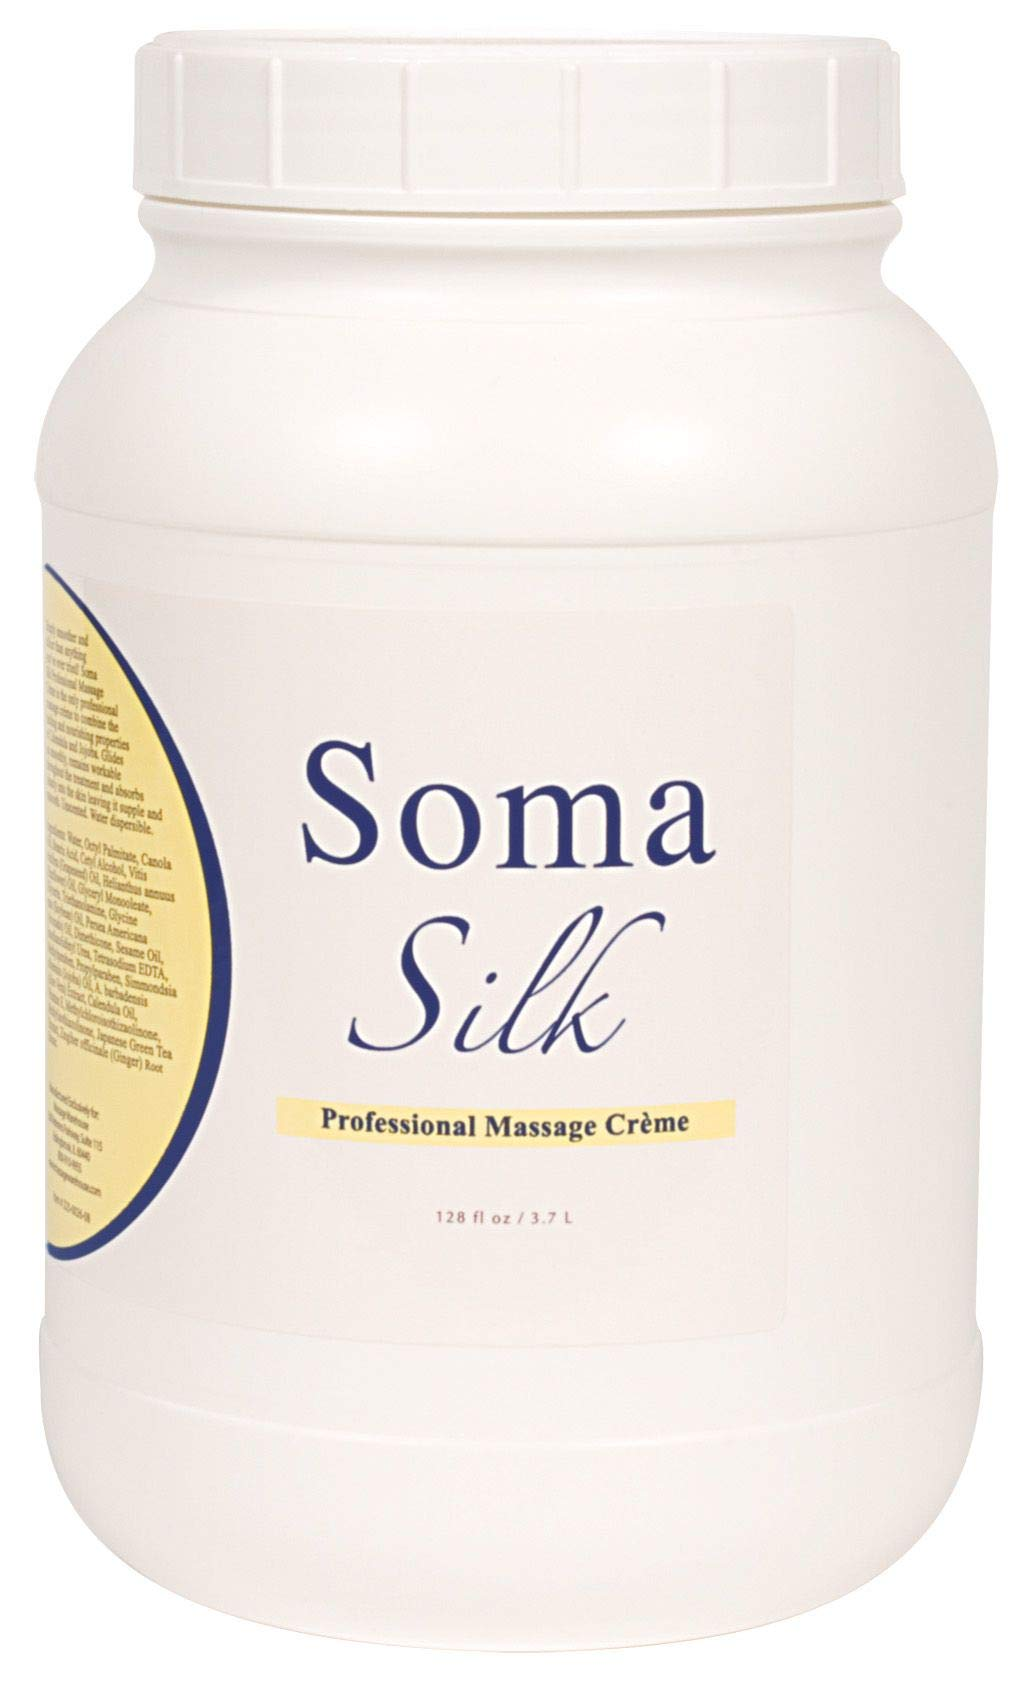 Professional Massage Creme by Soma Silk, 1 Gallon - Smooth & Silky Texture, Moisture Rich Massage Cream - Calendula and Jojoba Oils to Promote Healthy Skin - Easy Glide and Workability by Soma